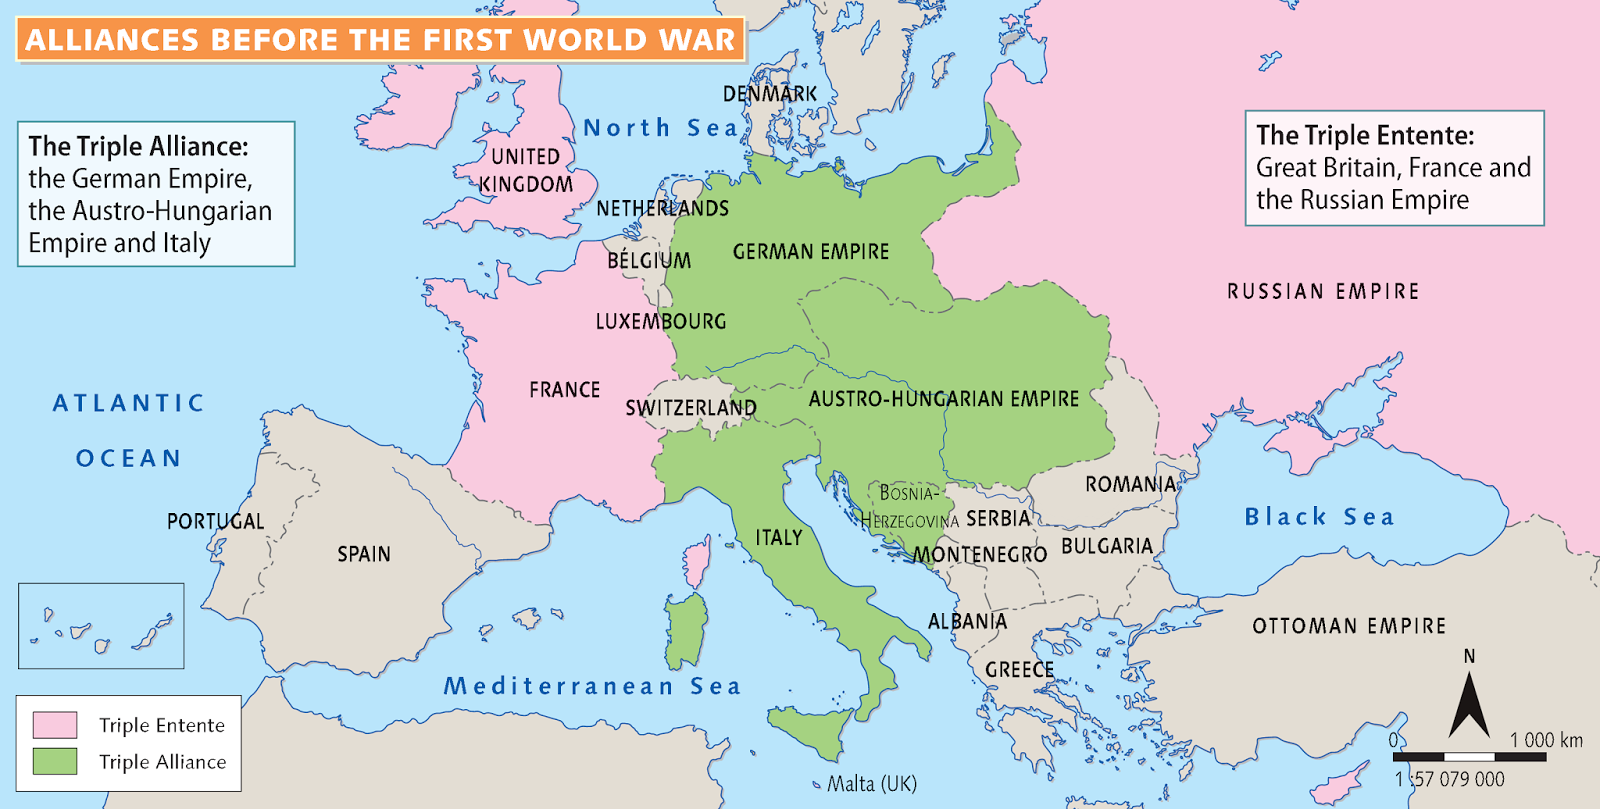 the role of alliances in the first world war The allied powers  the powers known as the allies in world war i were predominantly: great britain, france, russia and italy italy initially had a treaty with germany, but recanted and secretly allied with the allied powers.